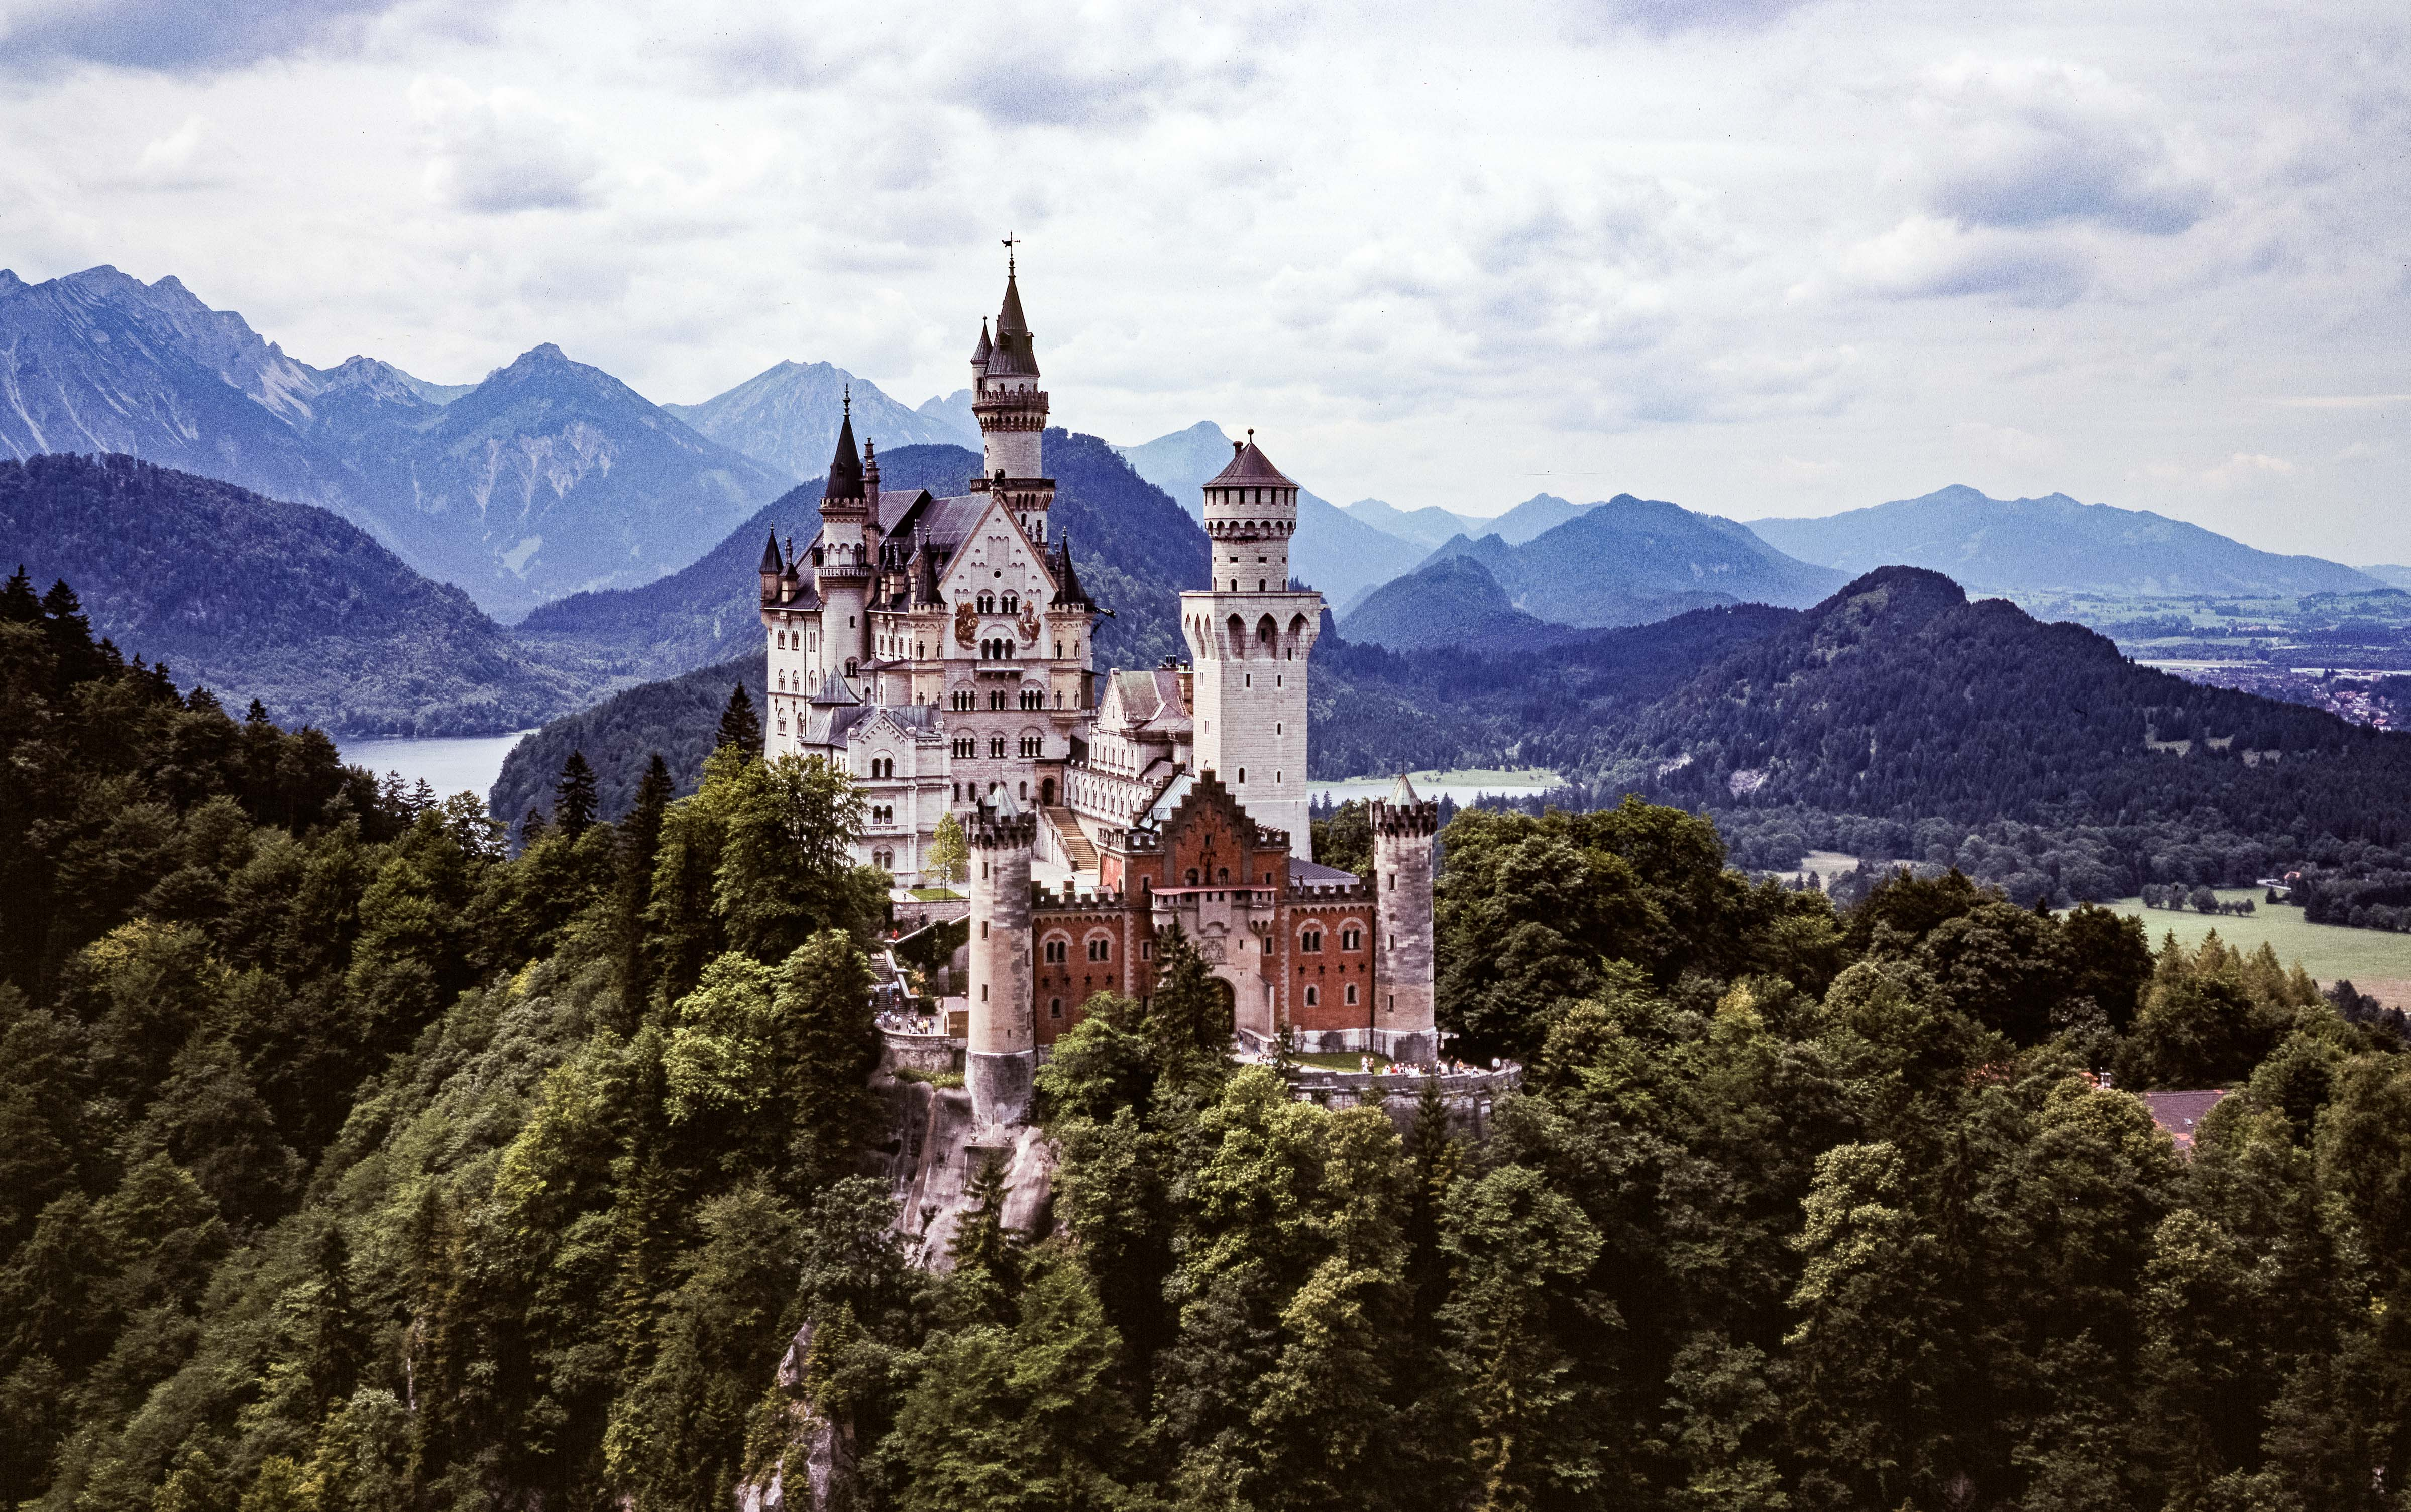 Germany, Neuschwanstein, 1990